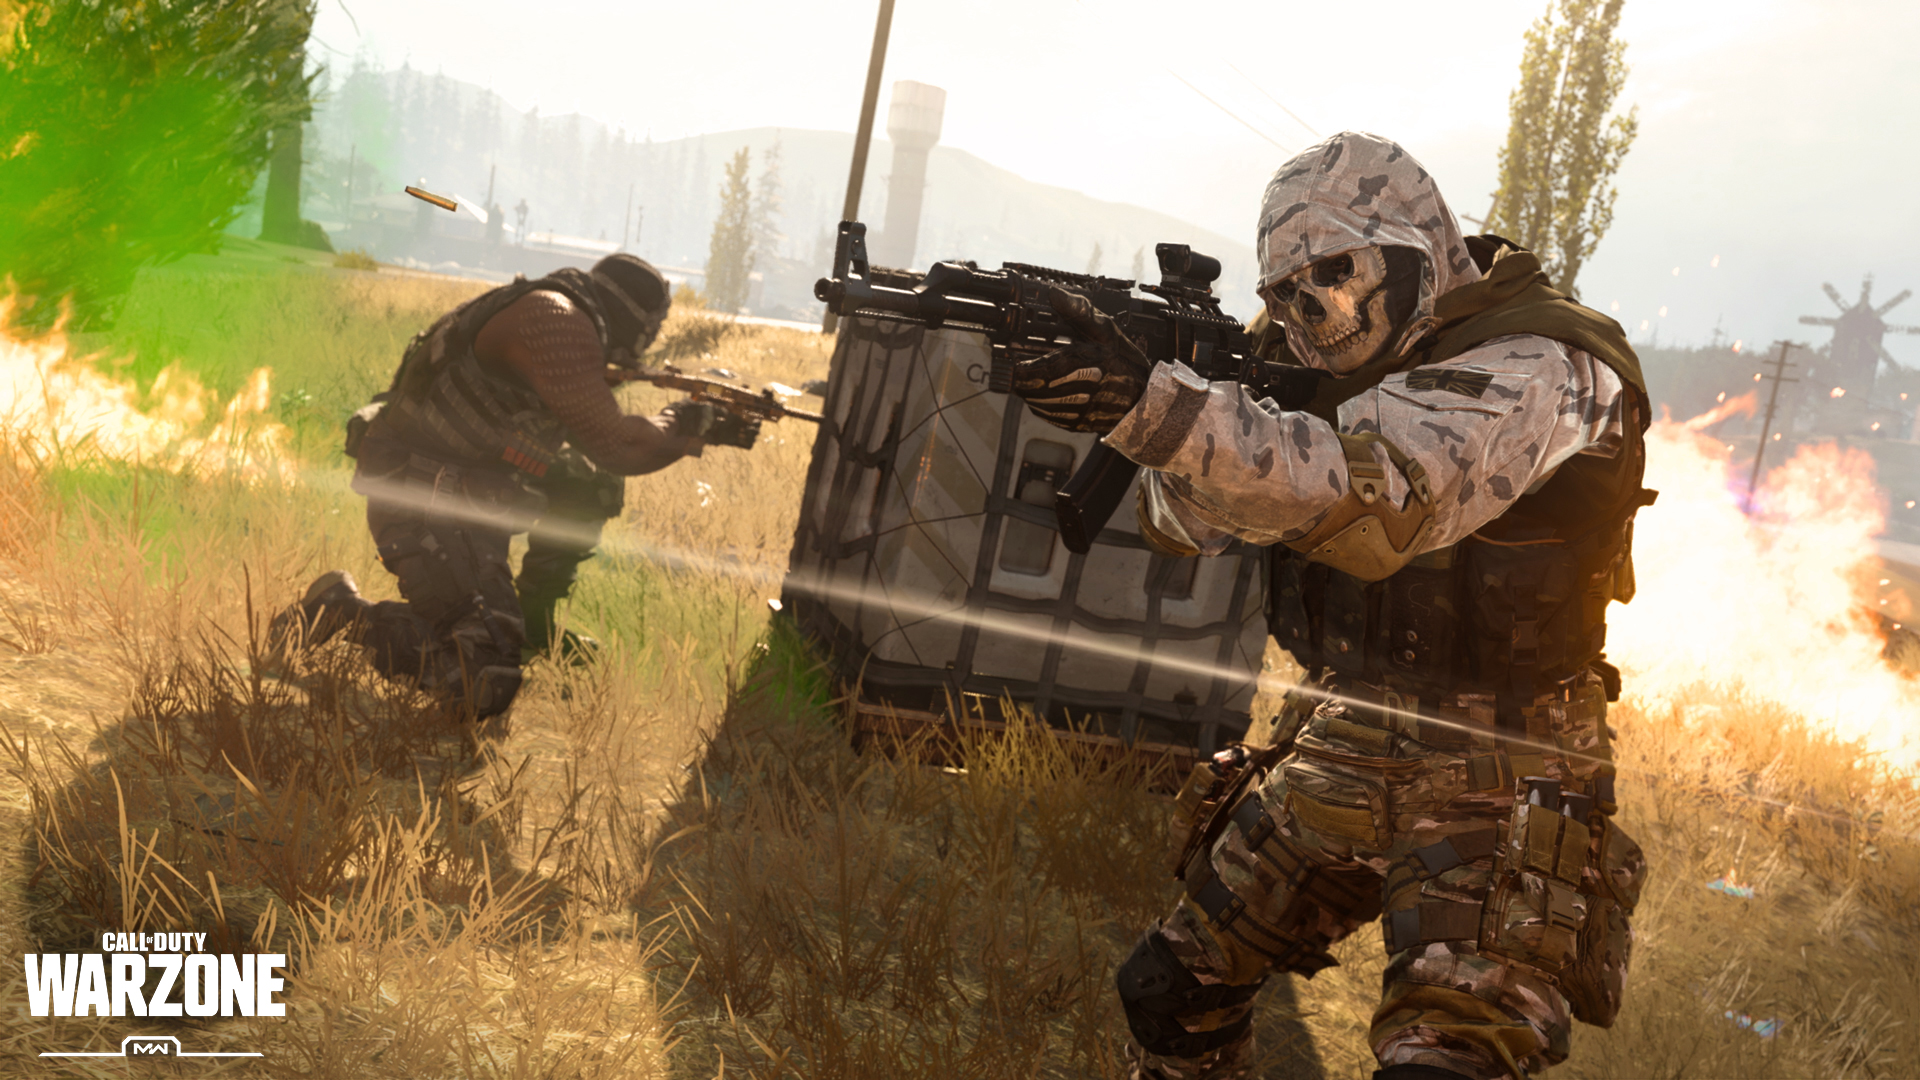 This Week in Call of Duty® - May 18 - Image 6